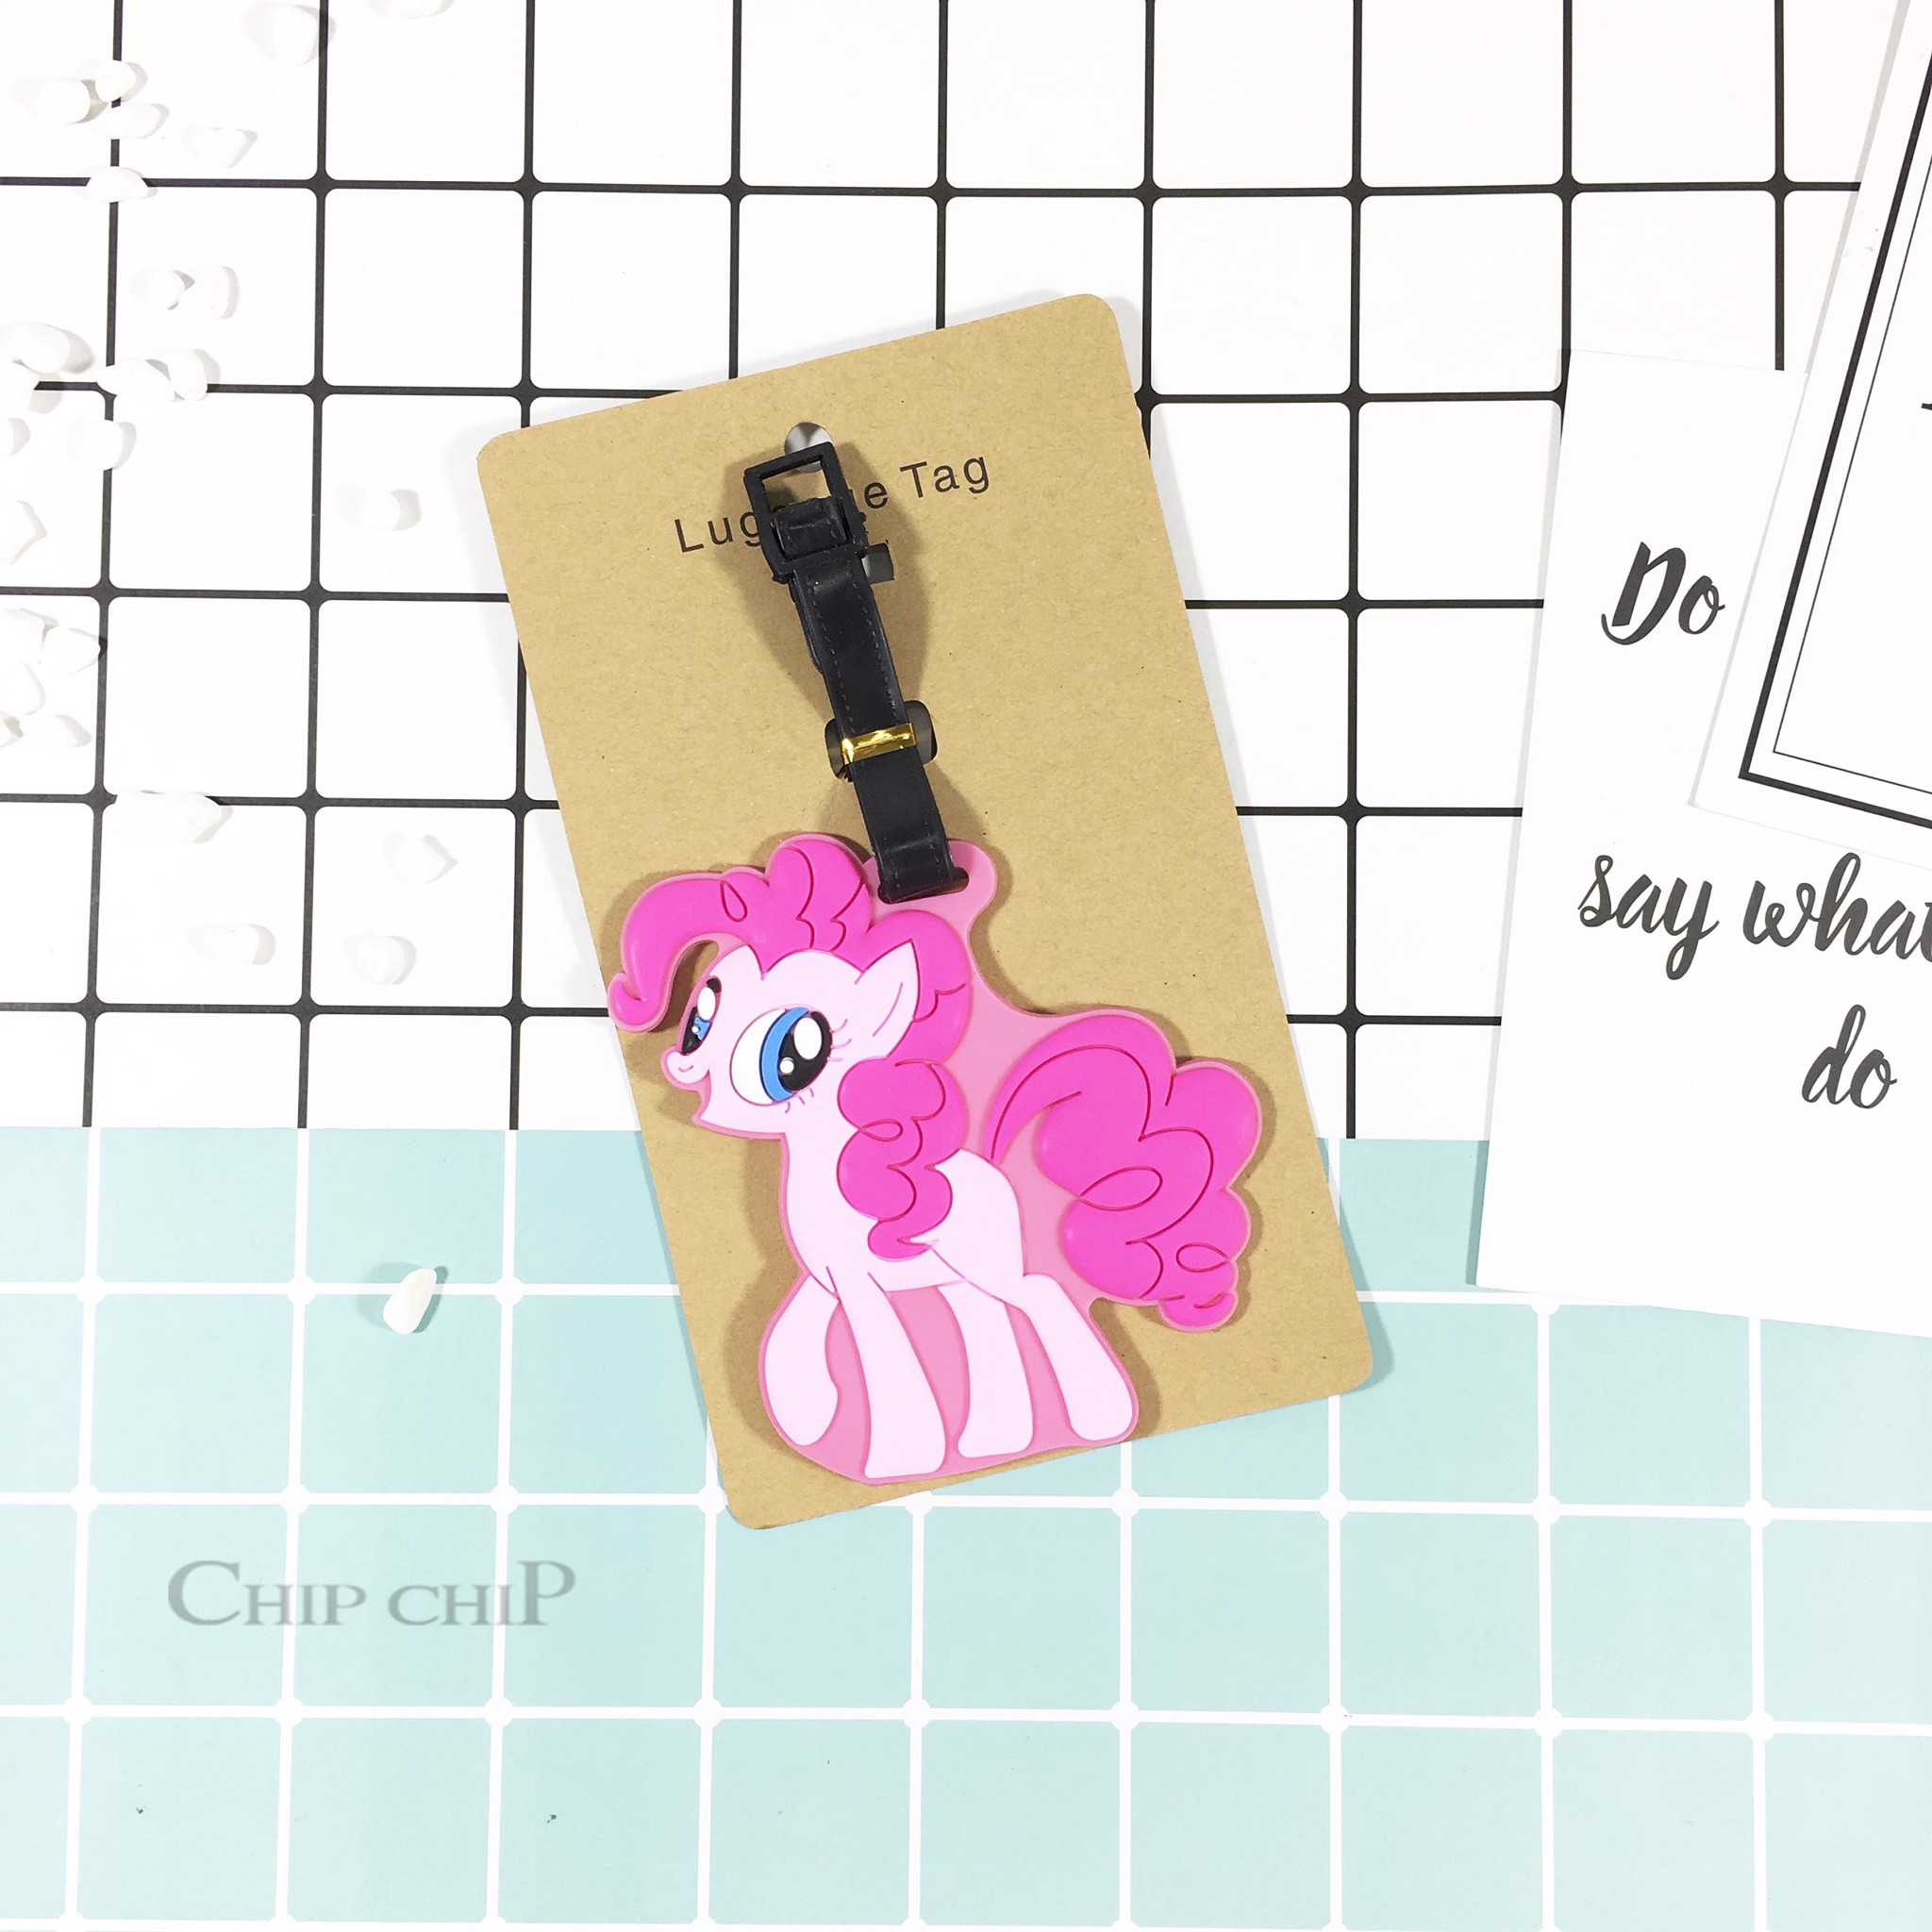 Name tag ngựa pony